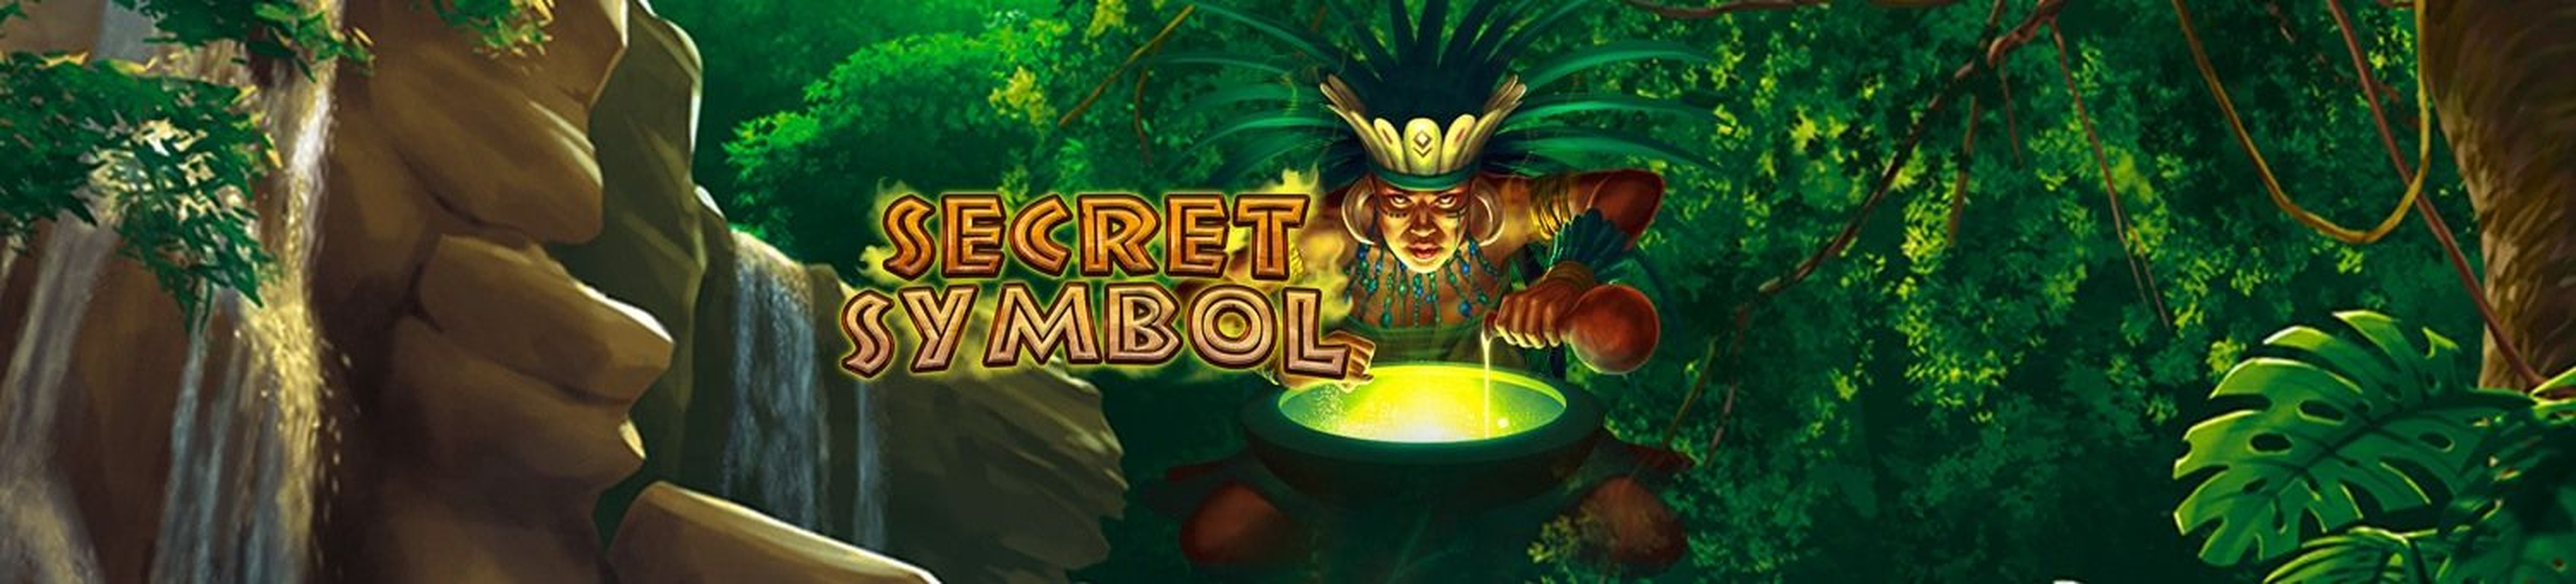 The Secret Symbol Online Slot Demo Game by Real Time Gaming